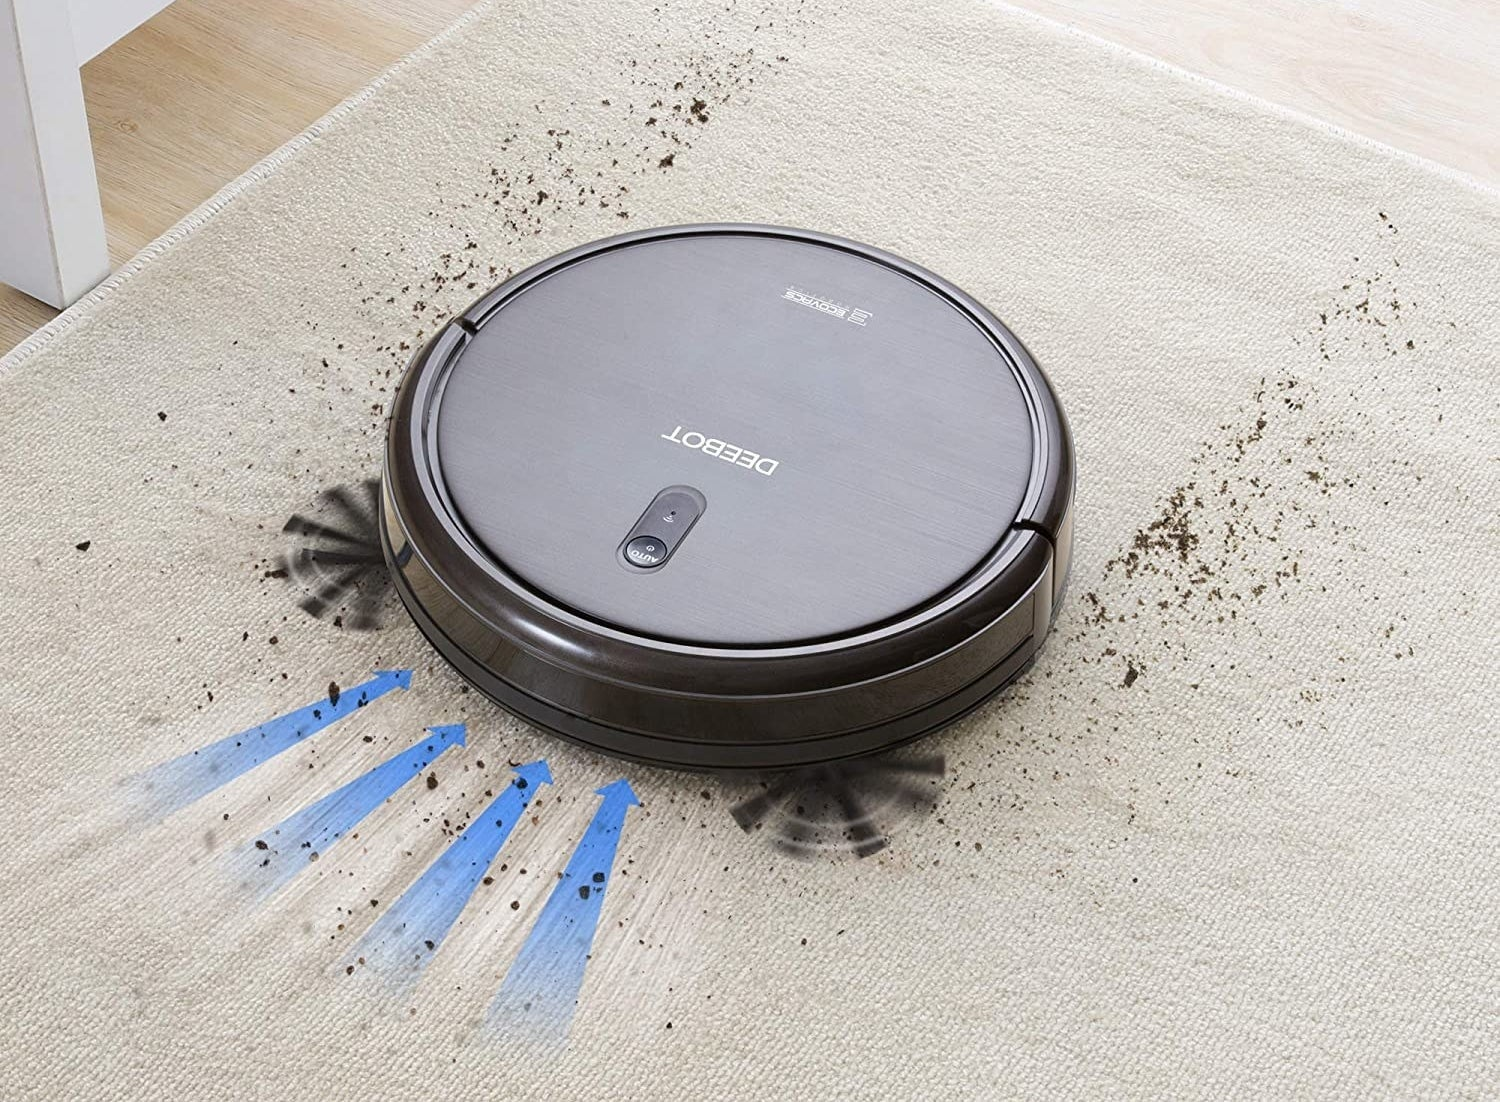 robot vacuum on carpet with crumbs